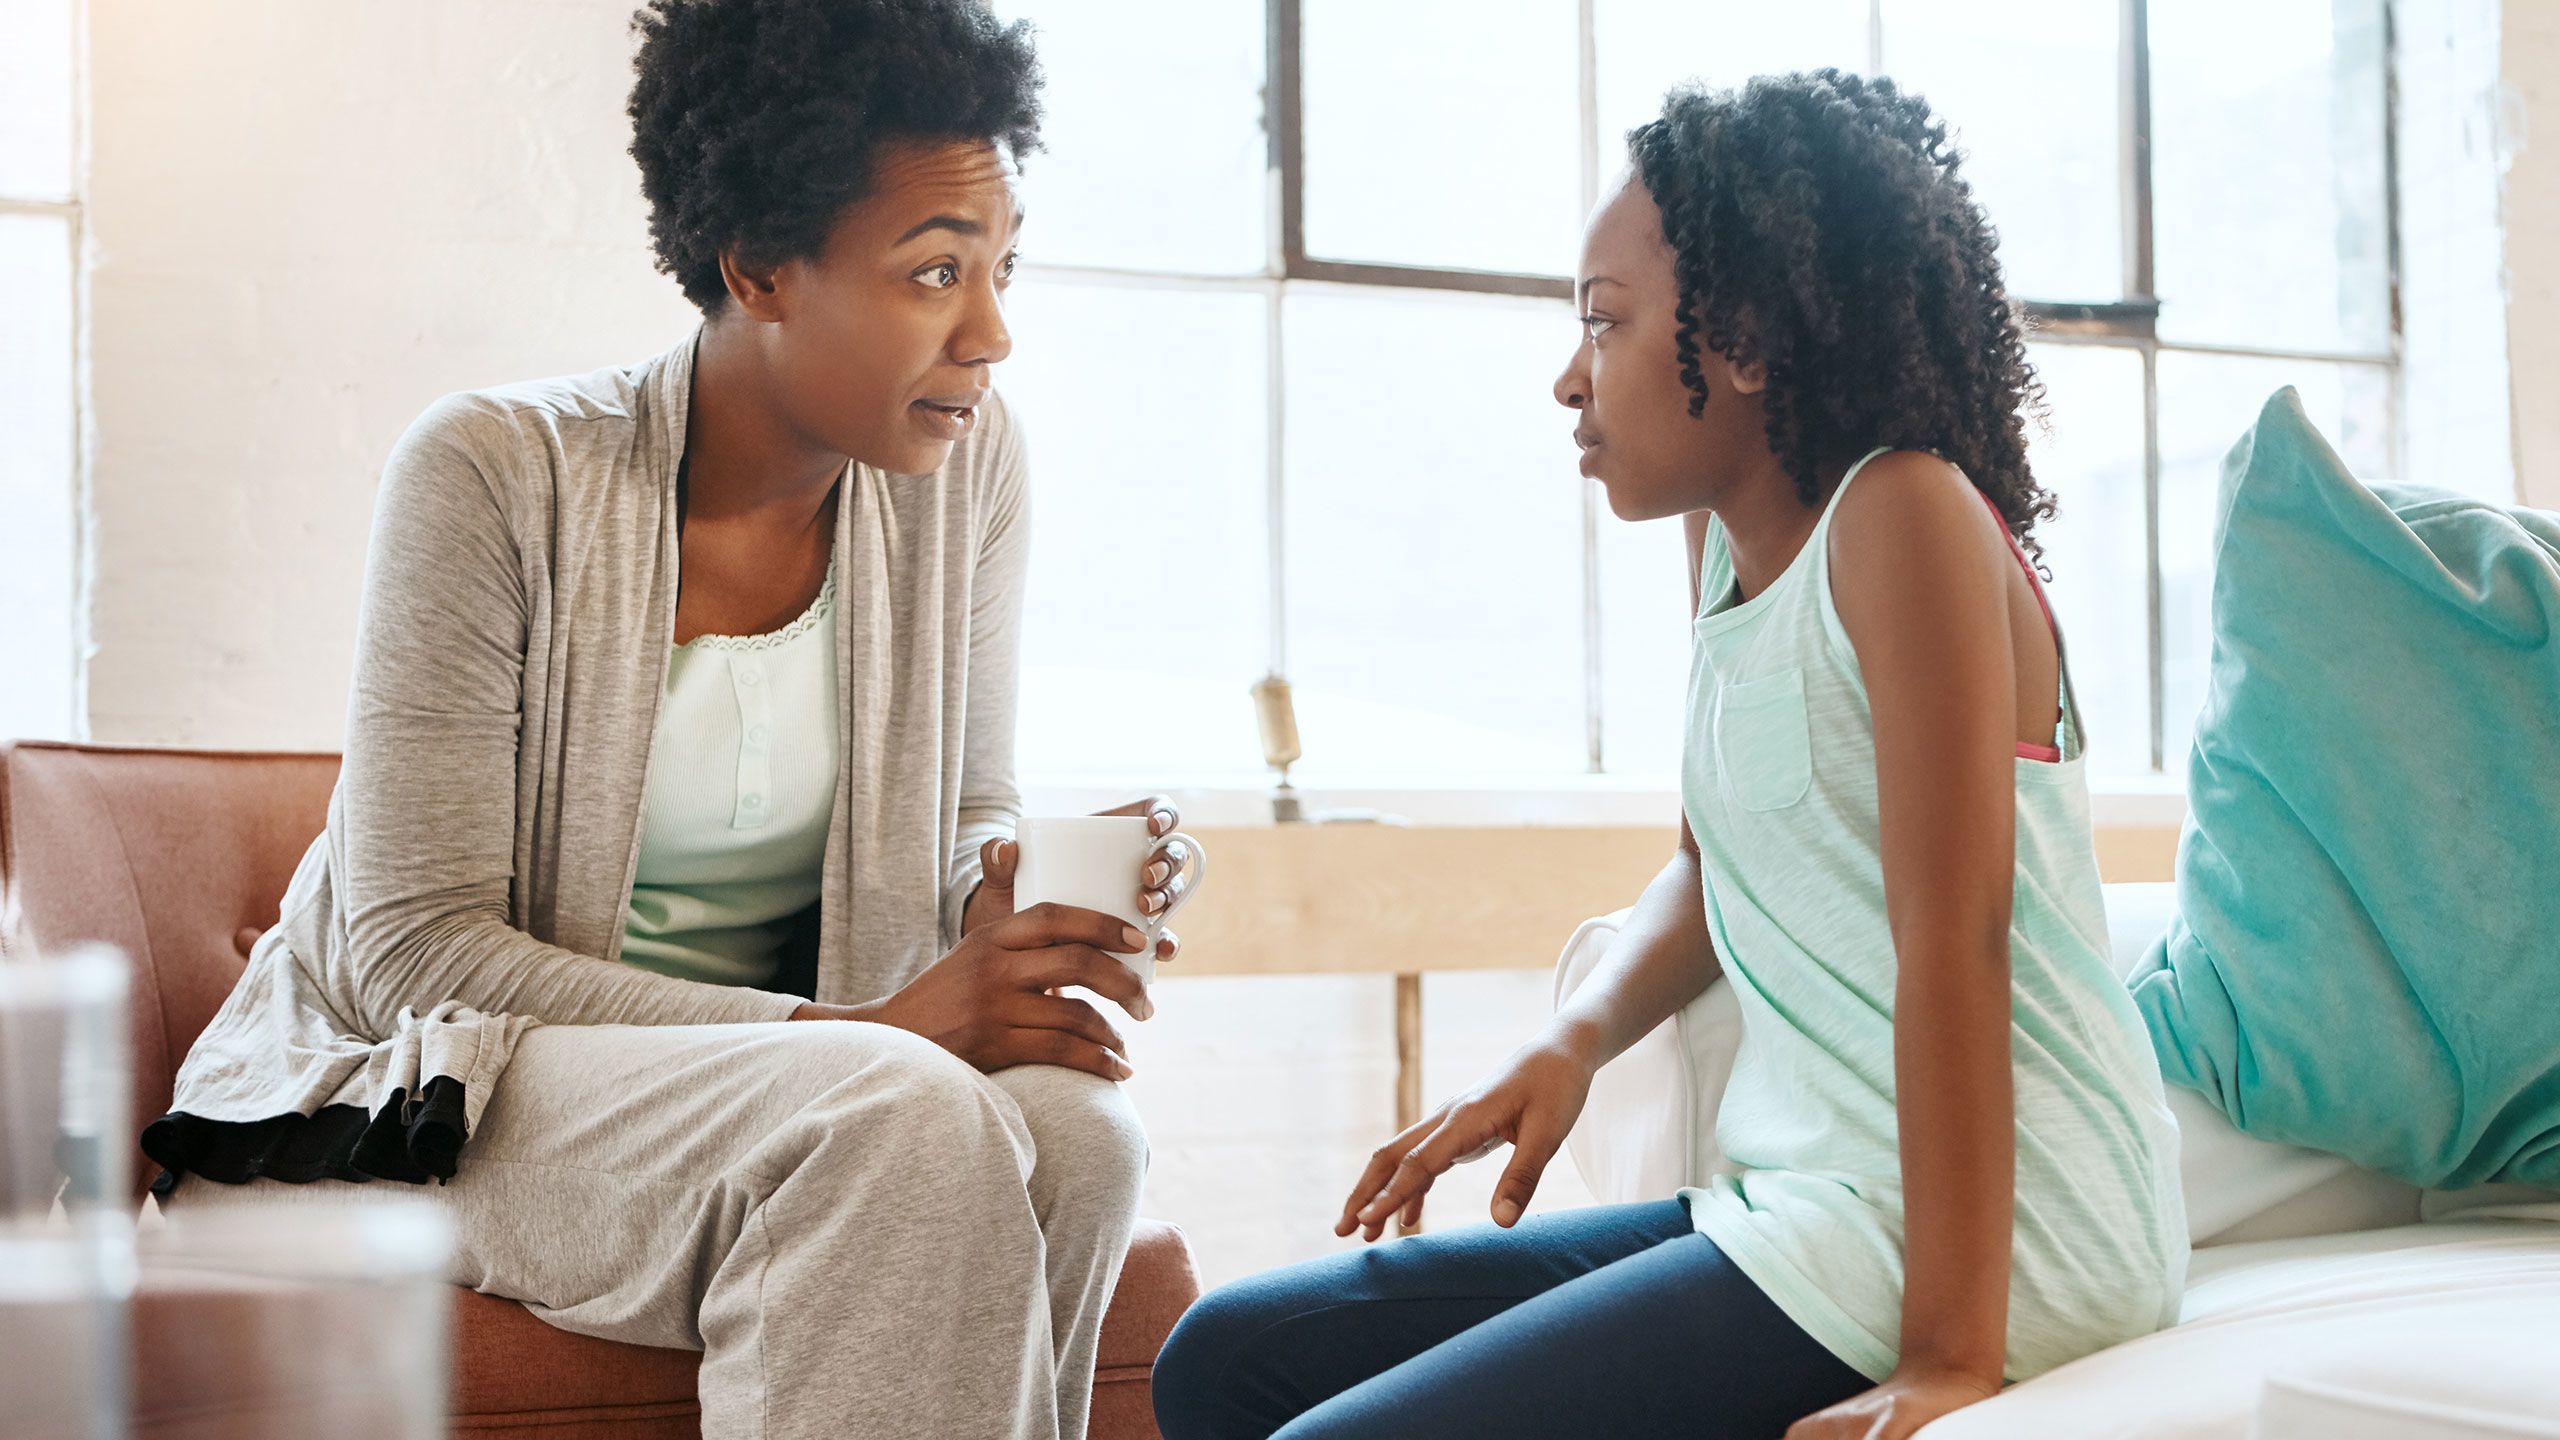 7 Signs You Should Worry About Your Child's Mental Health